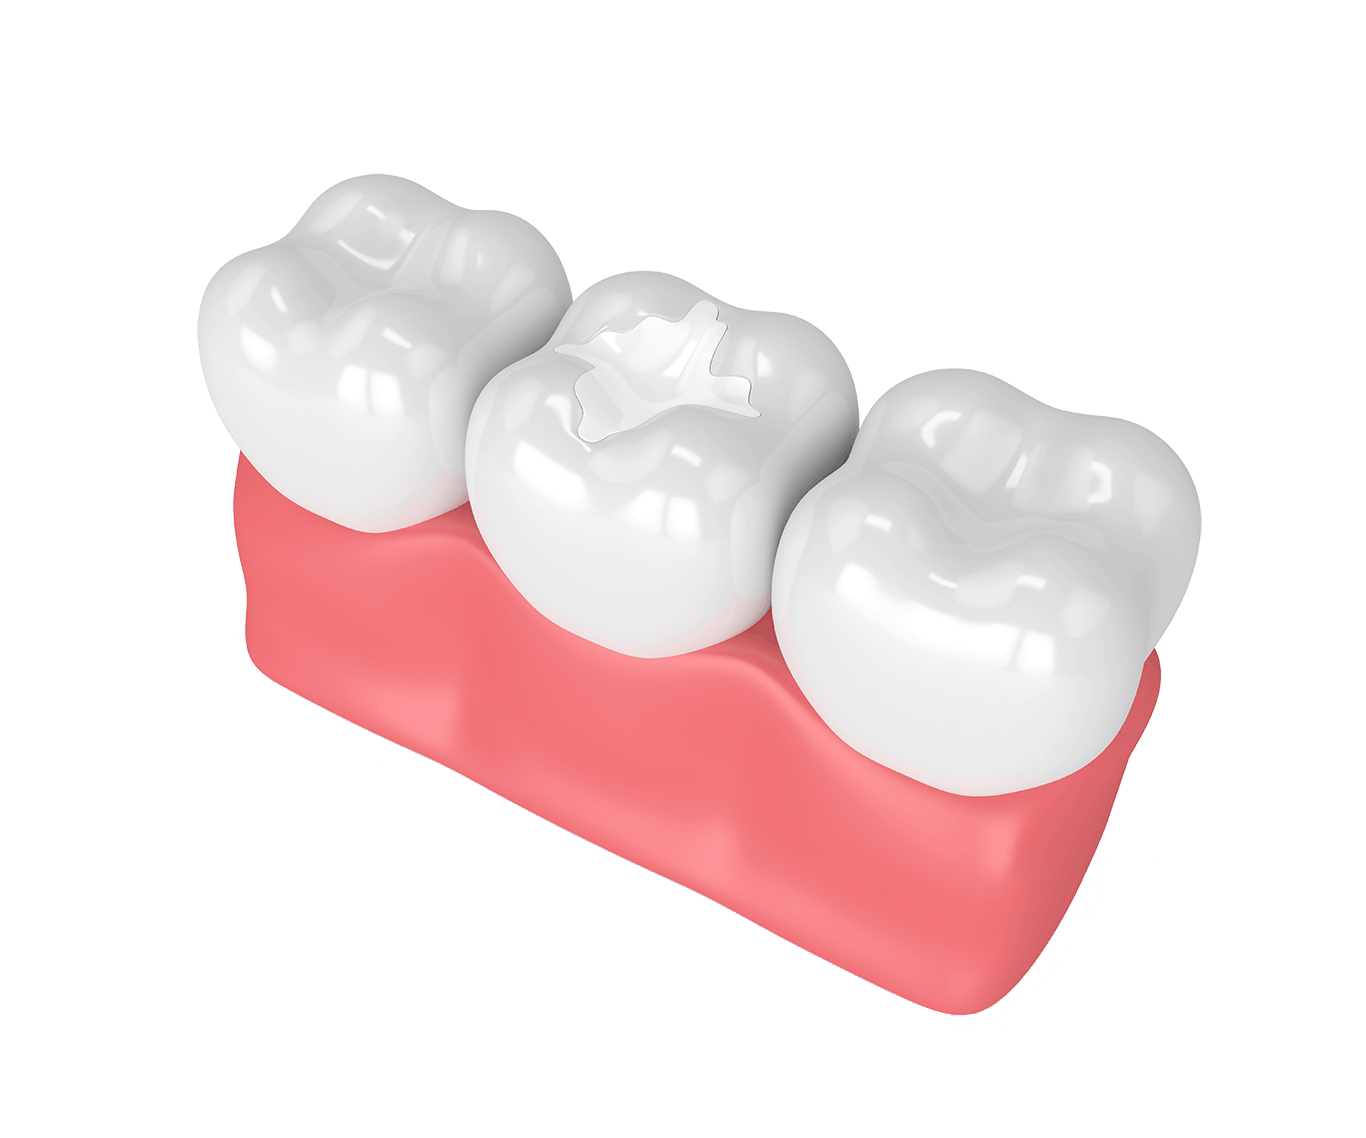 3d render of teeth with dental composite filling in gums over white background